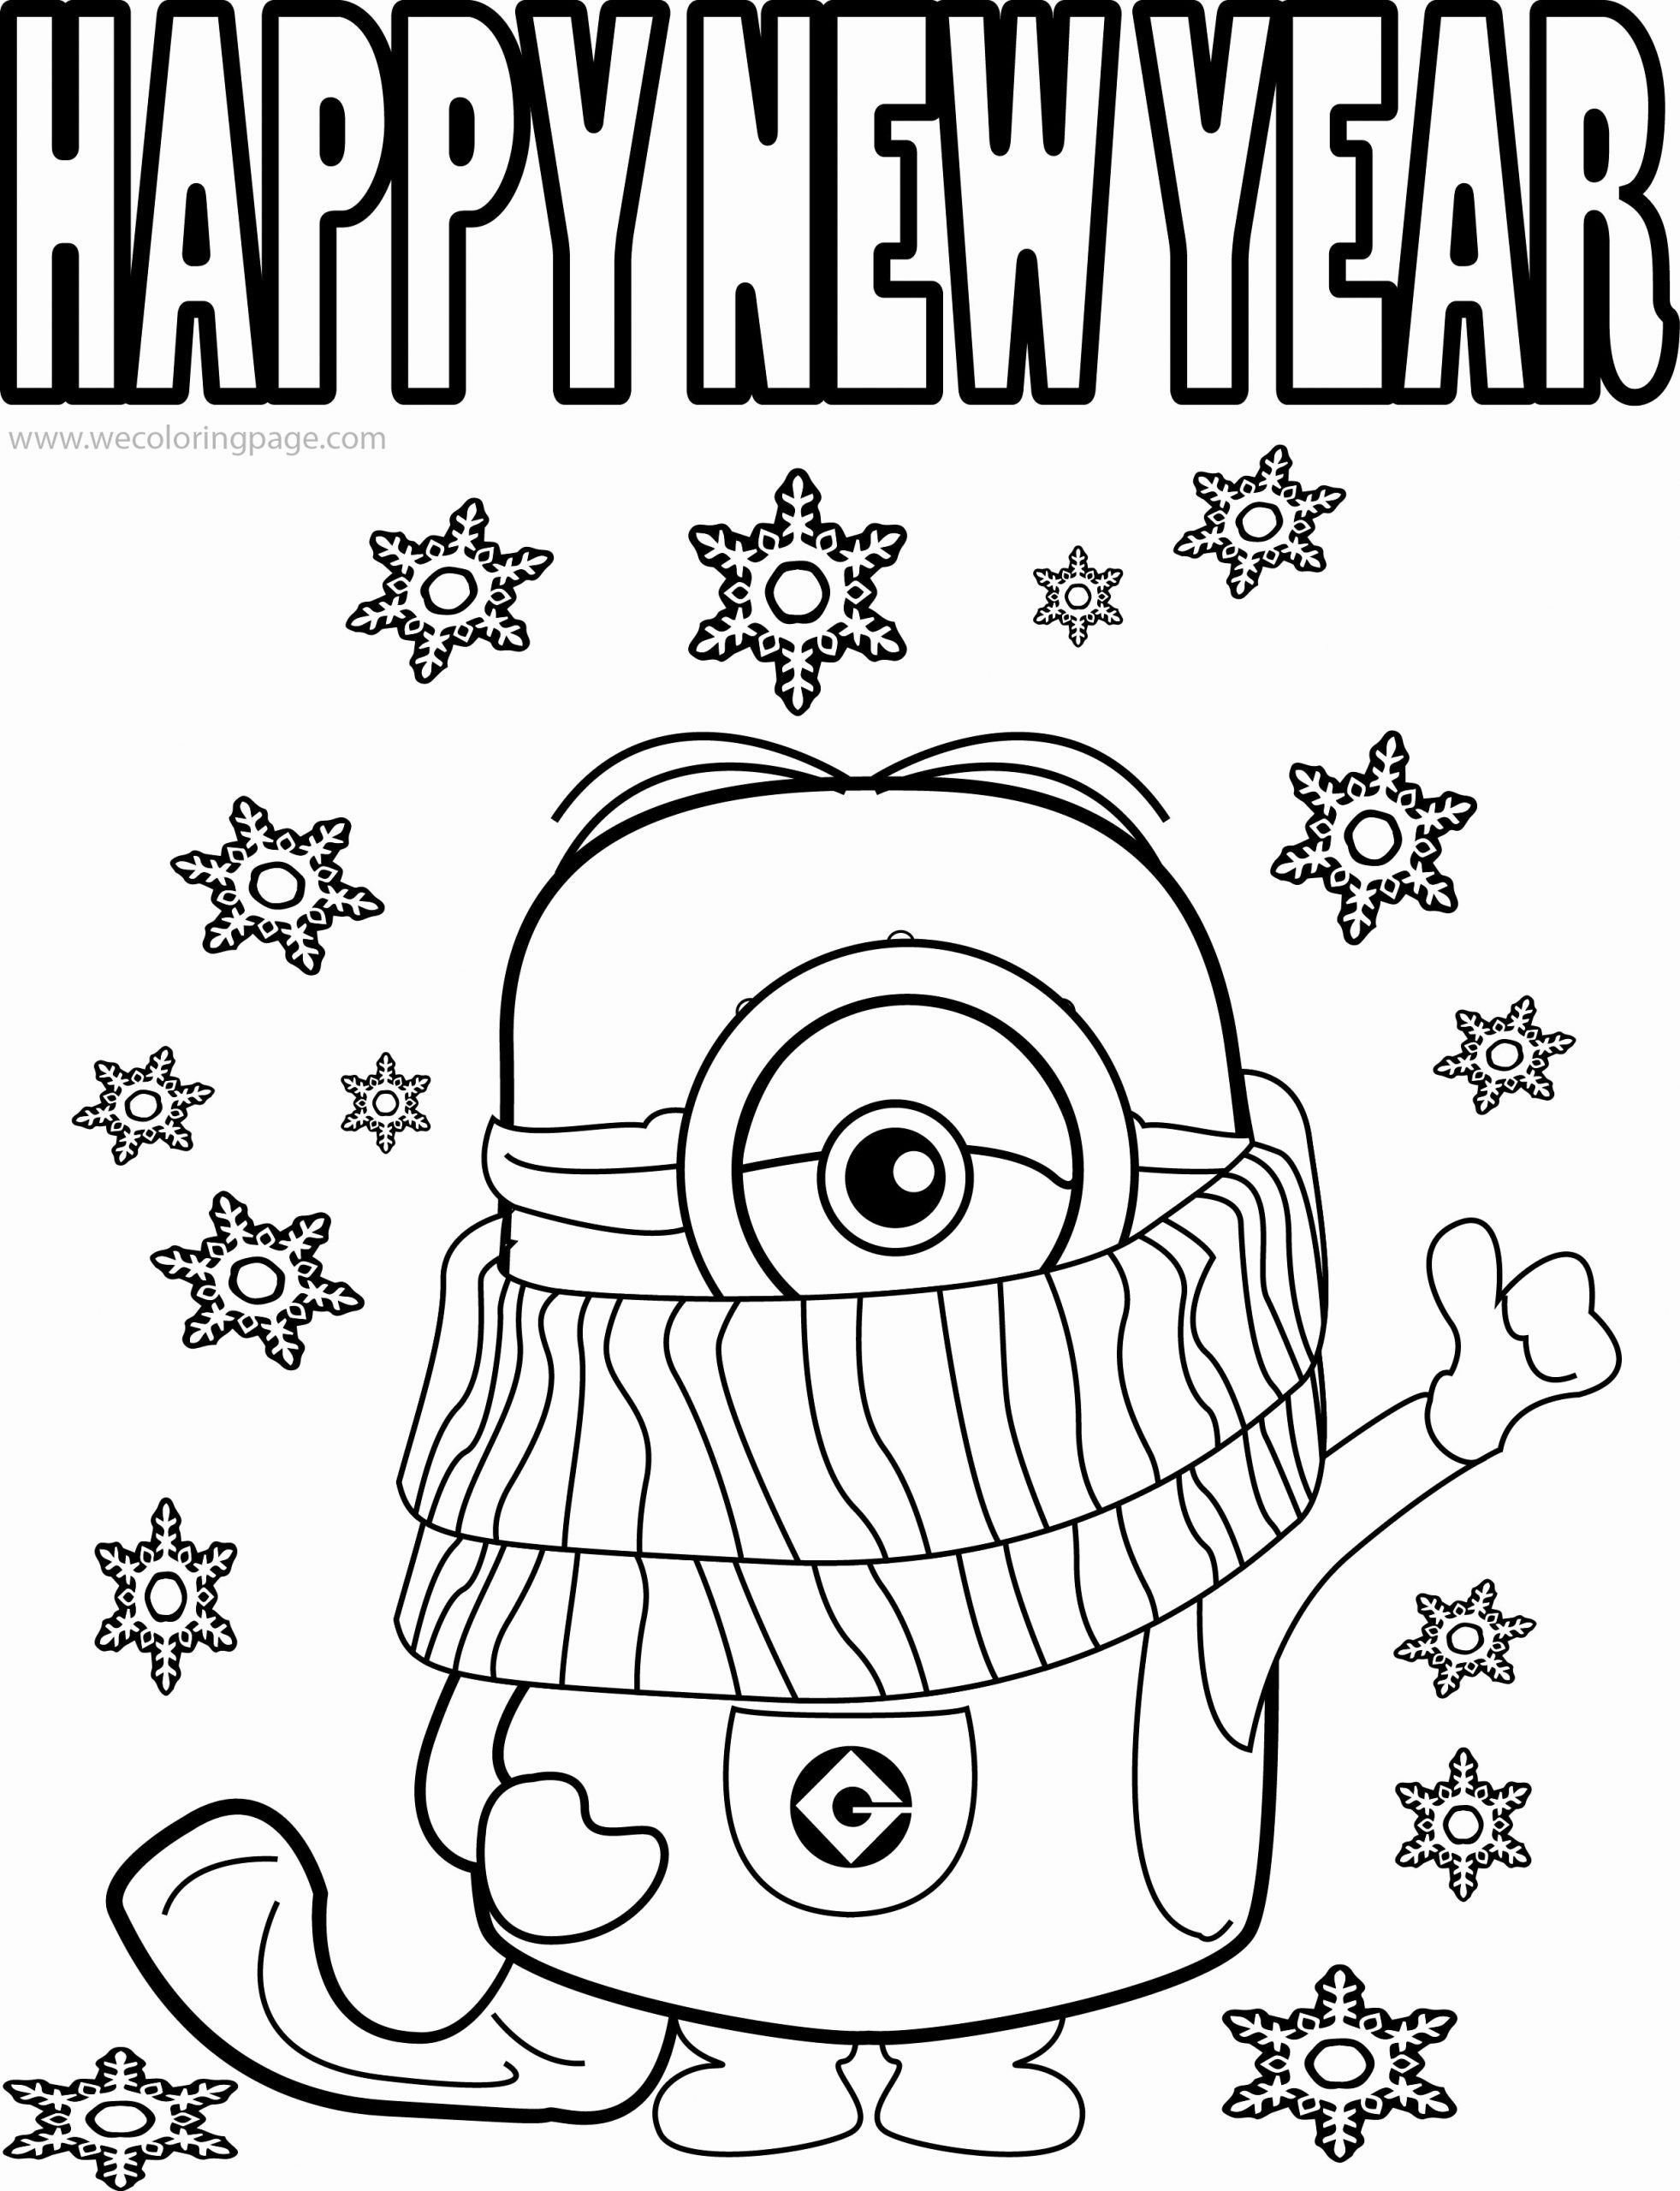 Pin On Coloring Pages For Kids Ideas